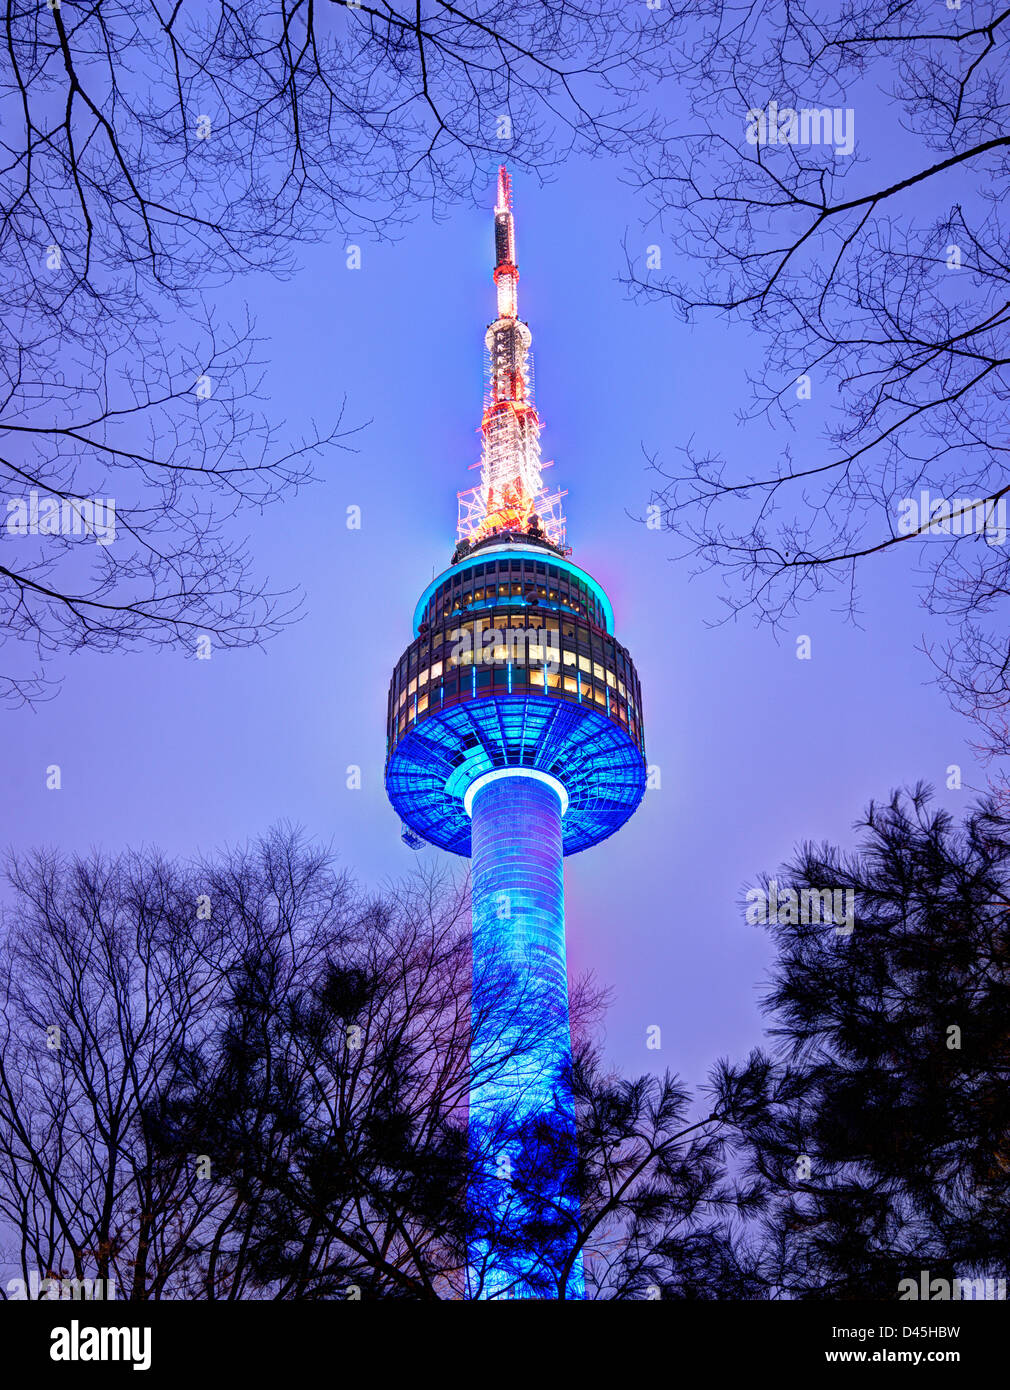 N Seoul Tower February 17, 2013 in Seoul, KR. It marks the highest point in Seoul. - Stock Image